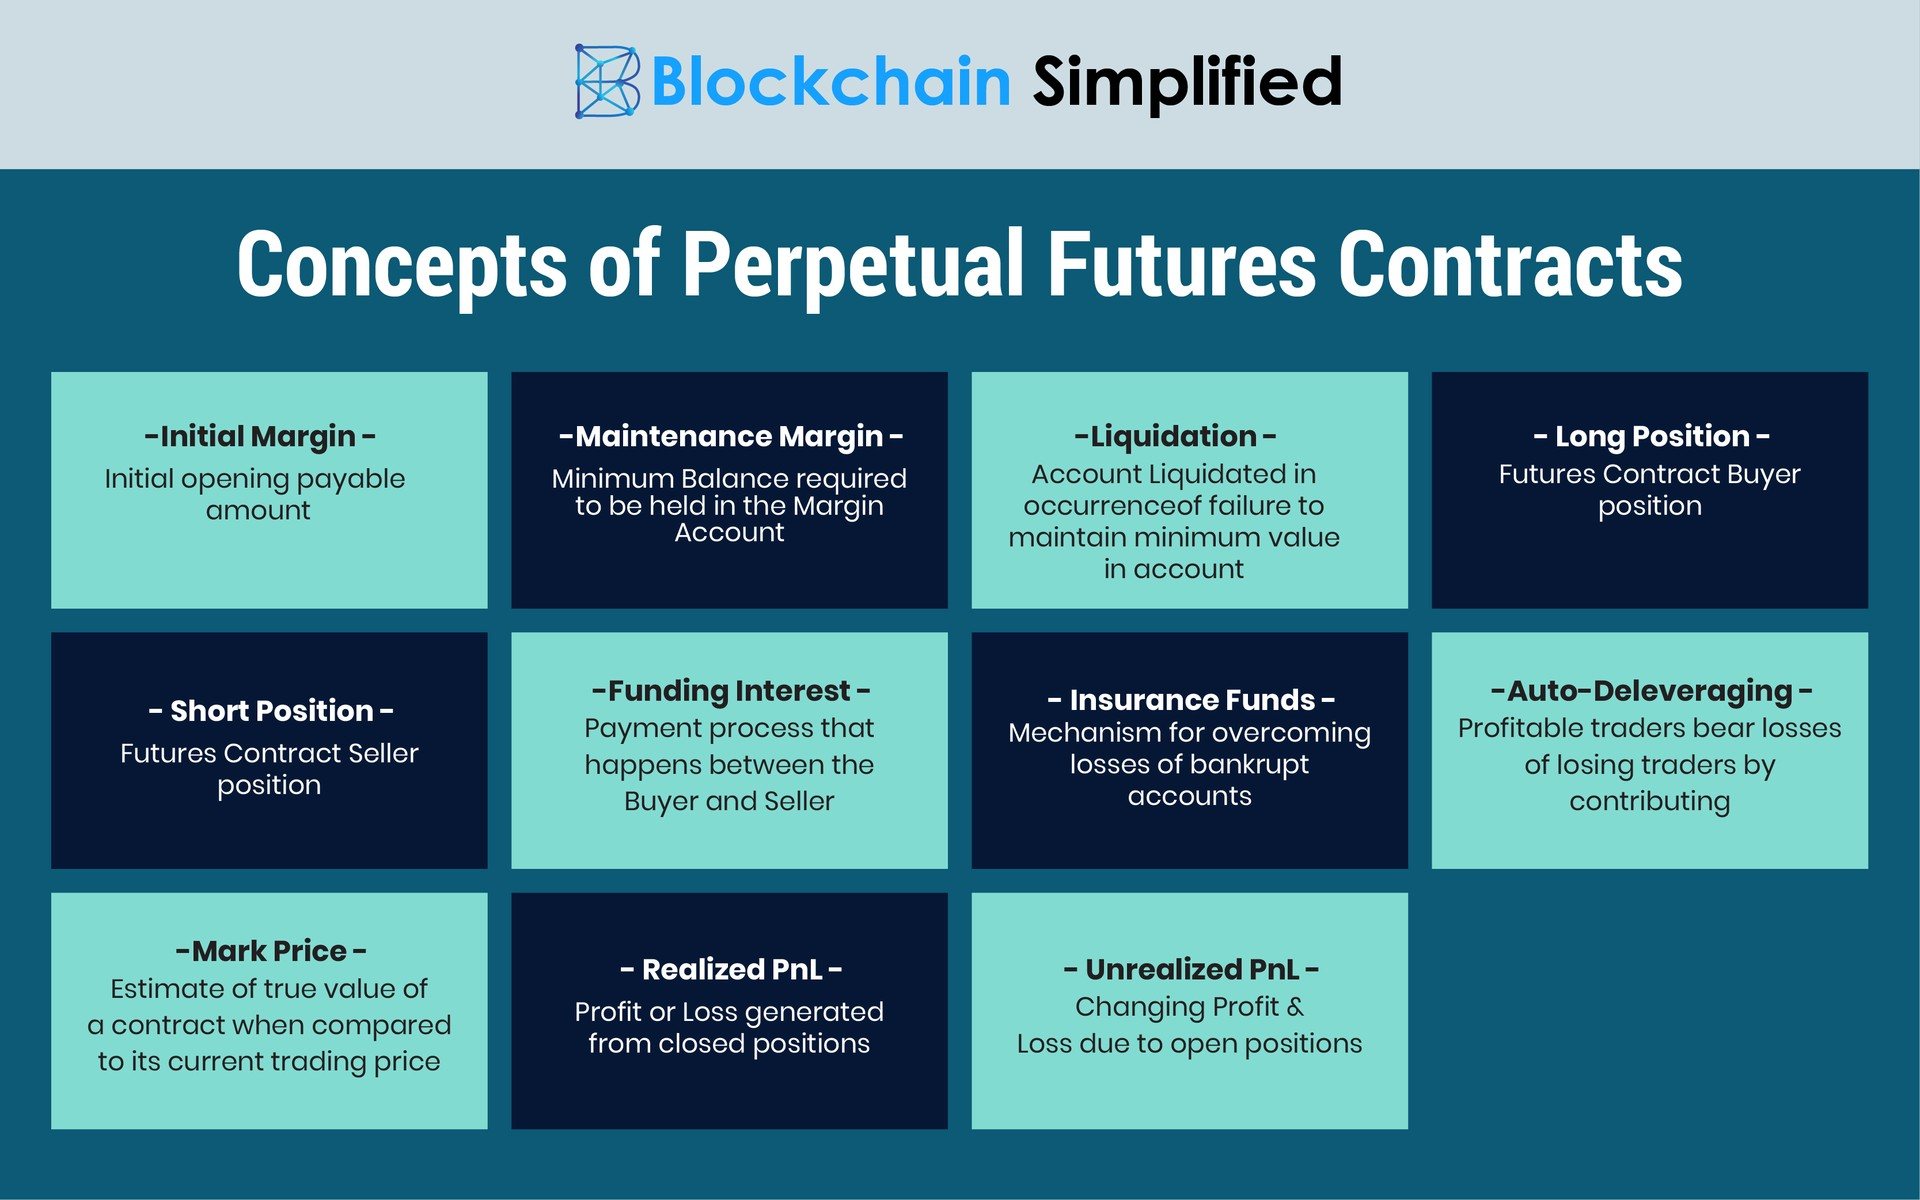 Perpetual Futures Contracts Concepts